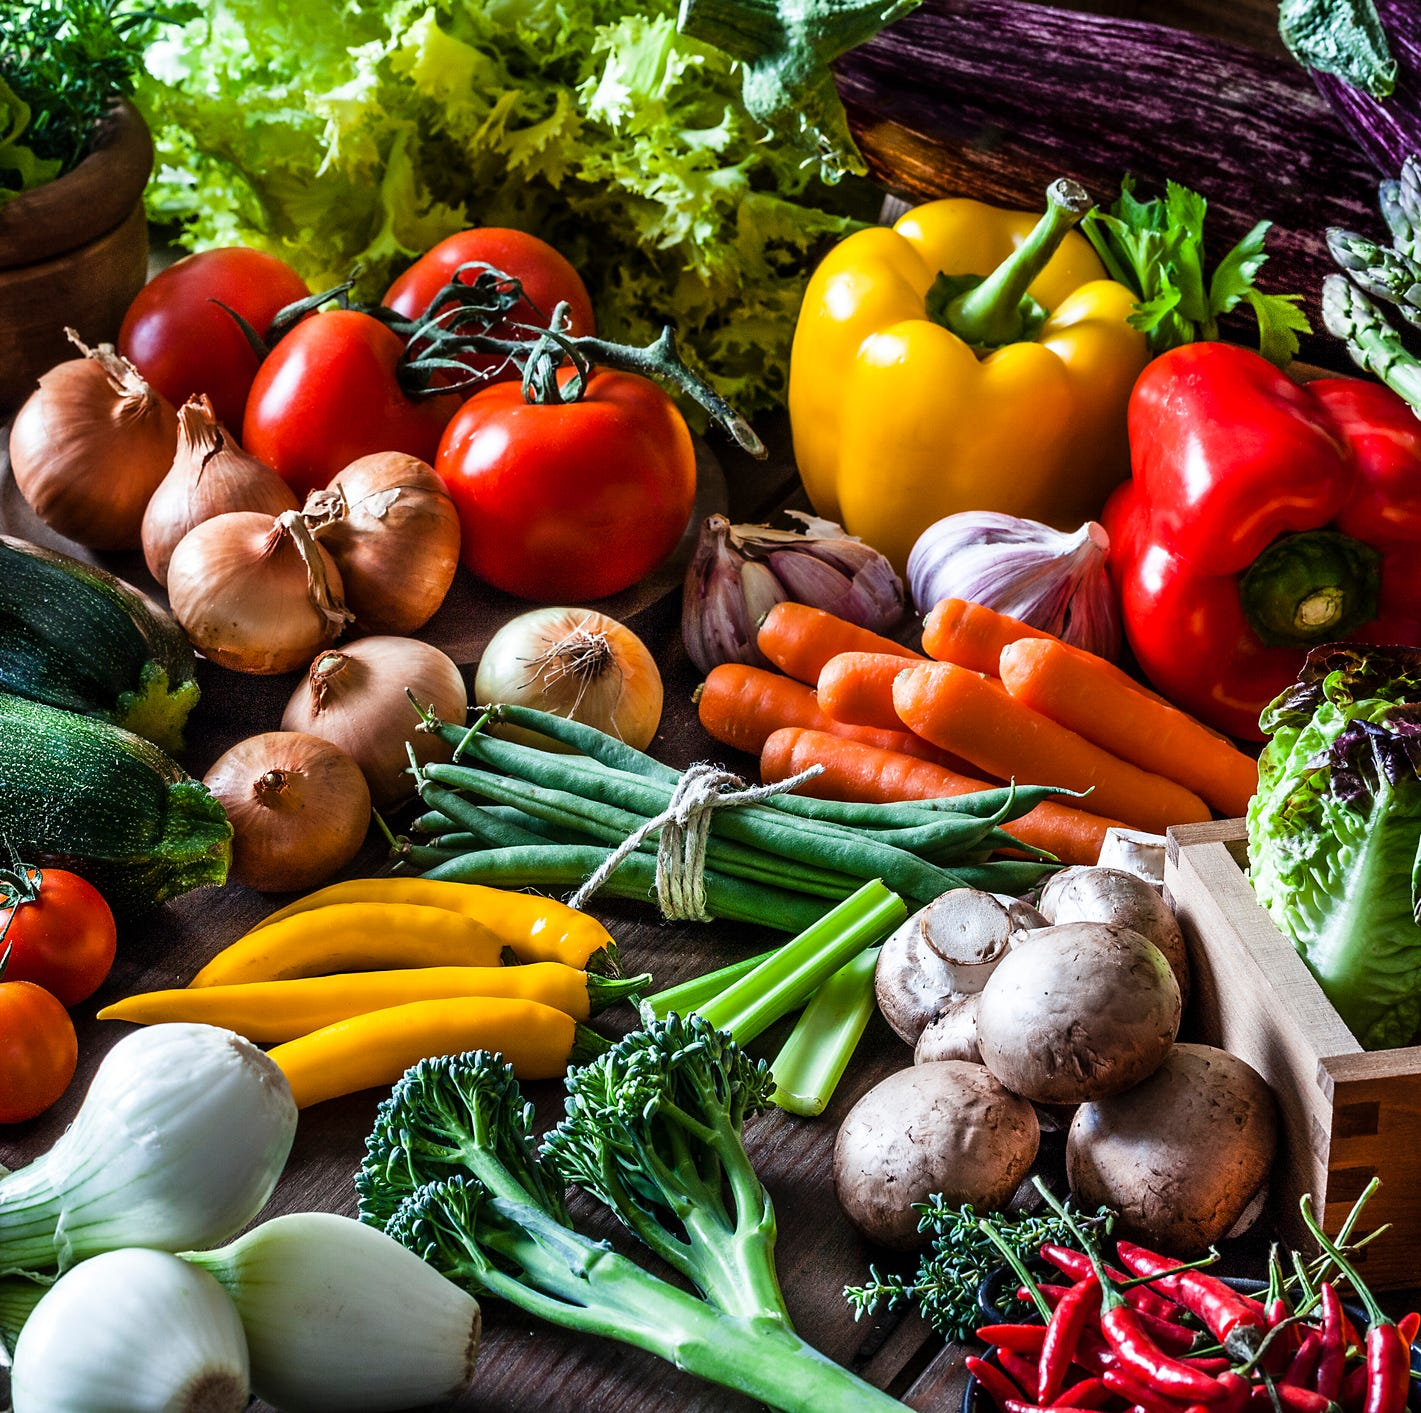 Does eating organic food prevent cancer? Yes, a new study suggests